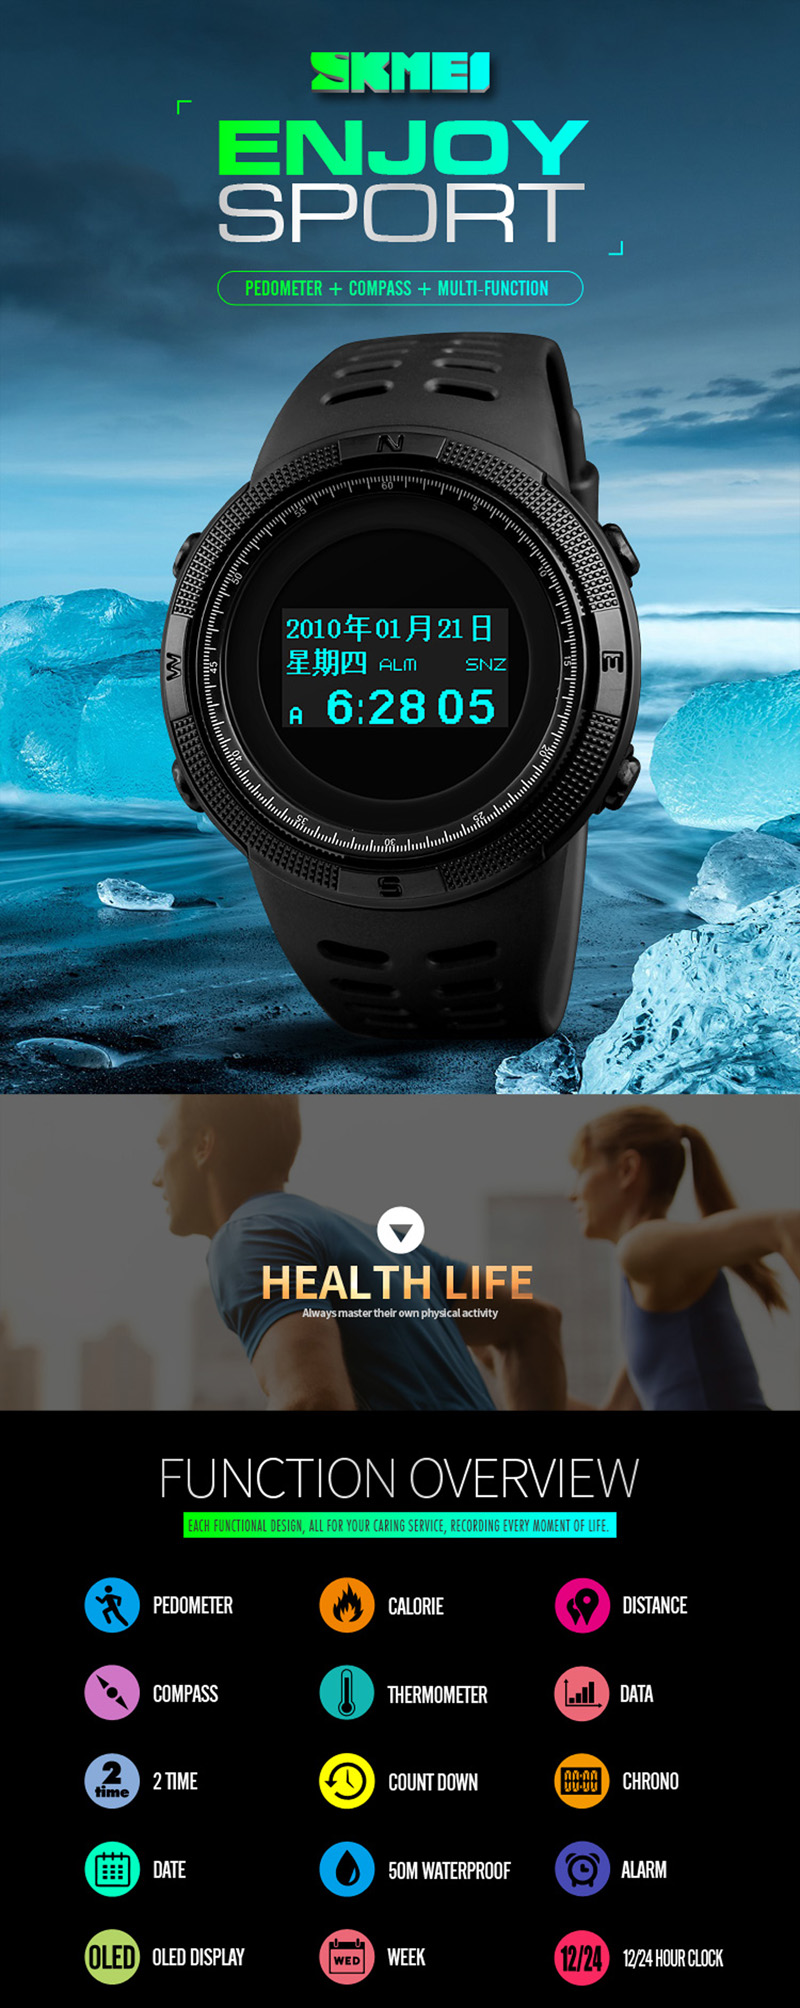 Mens Watches Pedometer Calorie Digital Sport Watch Men Compass Thermometer Wrist Watch Outdoor Relojes Para Hombre Skmei 2019 Digital Watches Men's Watches